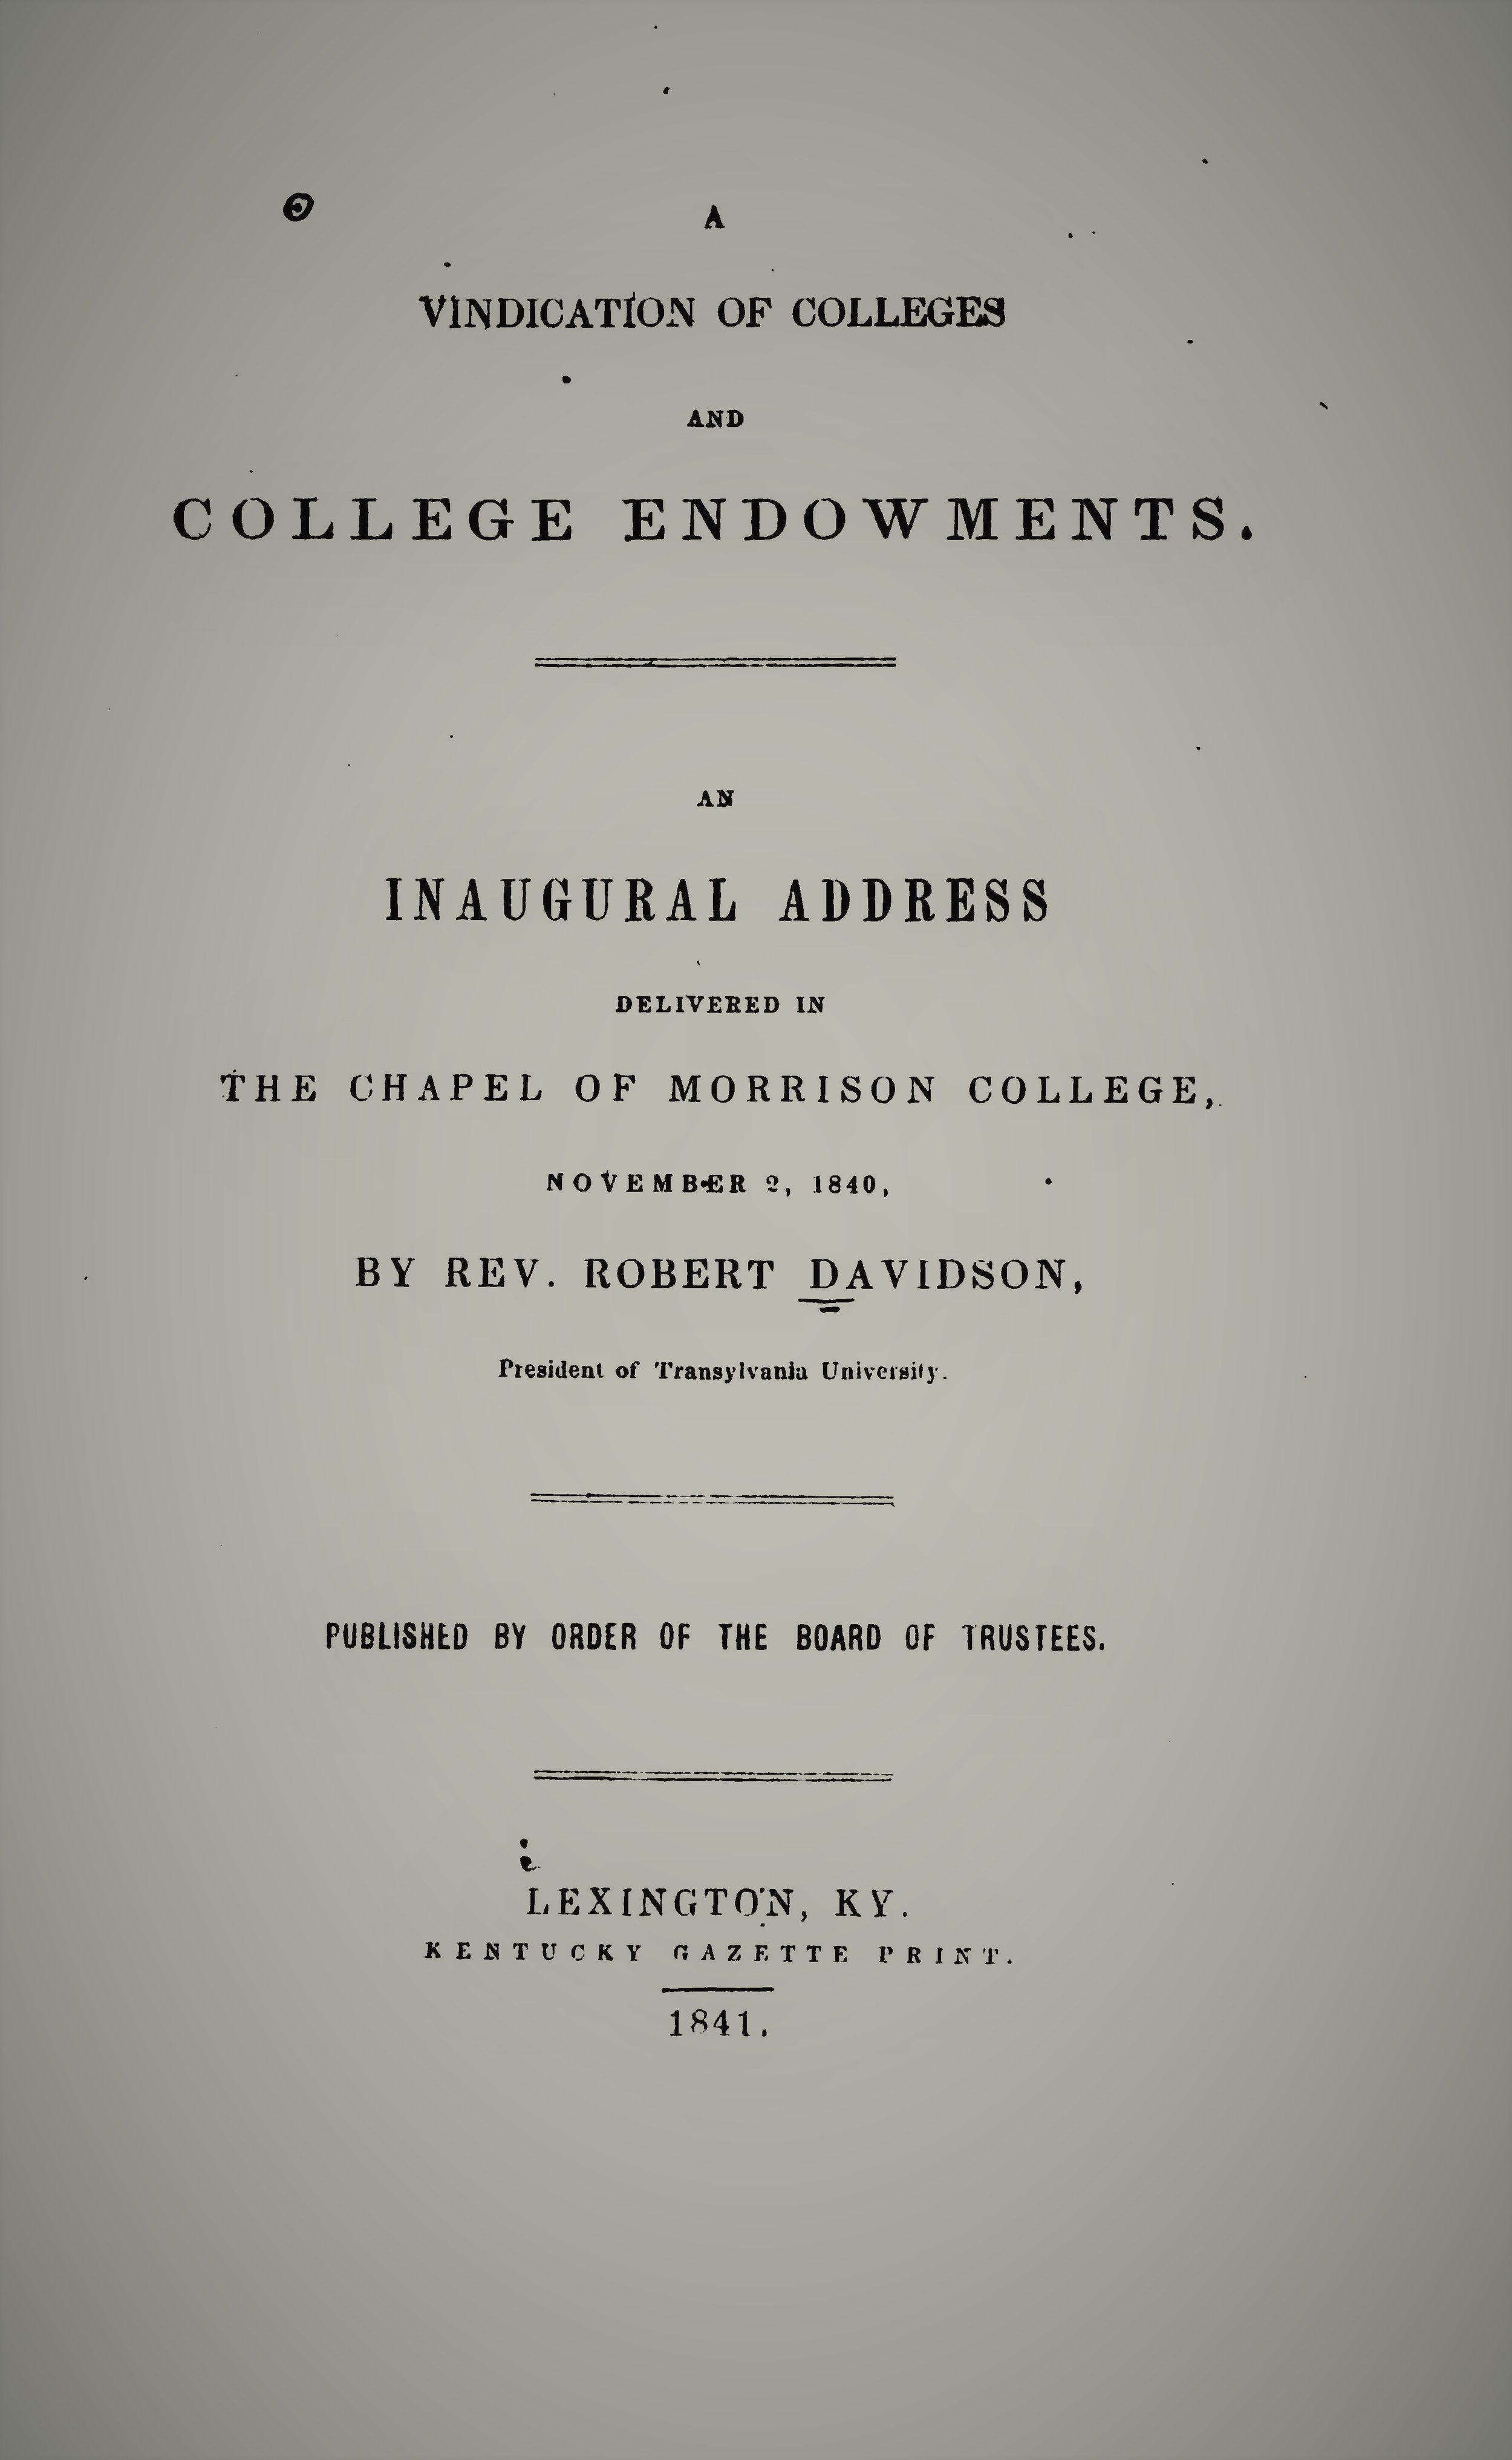 Davidson, Robert - Vindication of Colleges.jpg